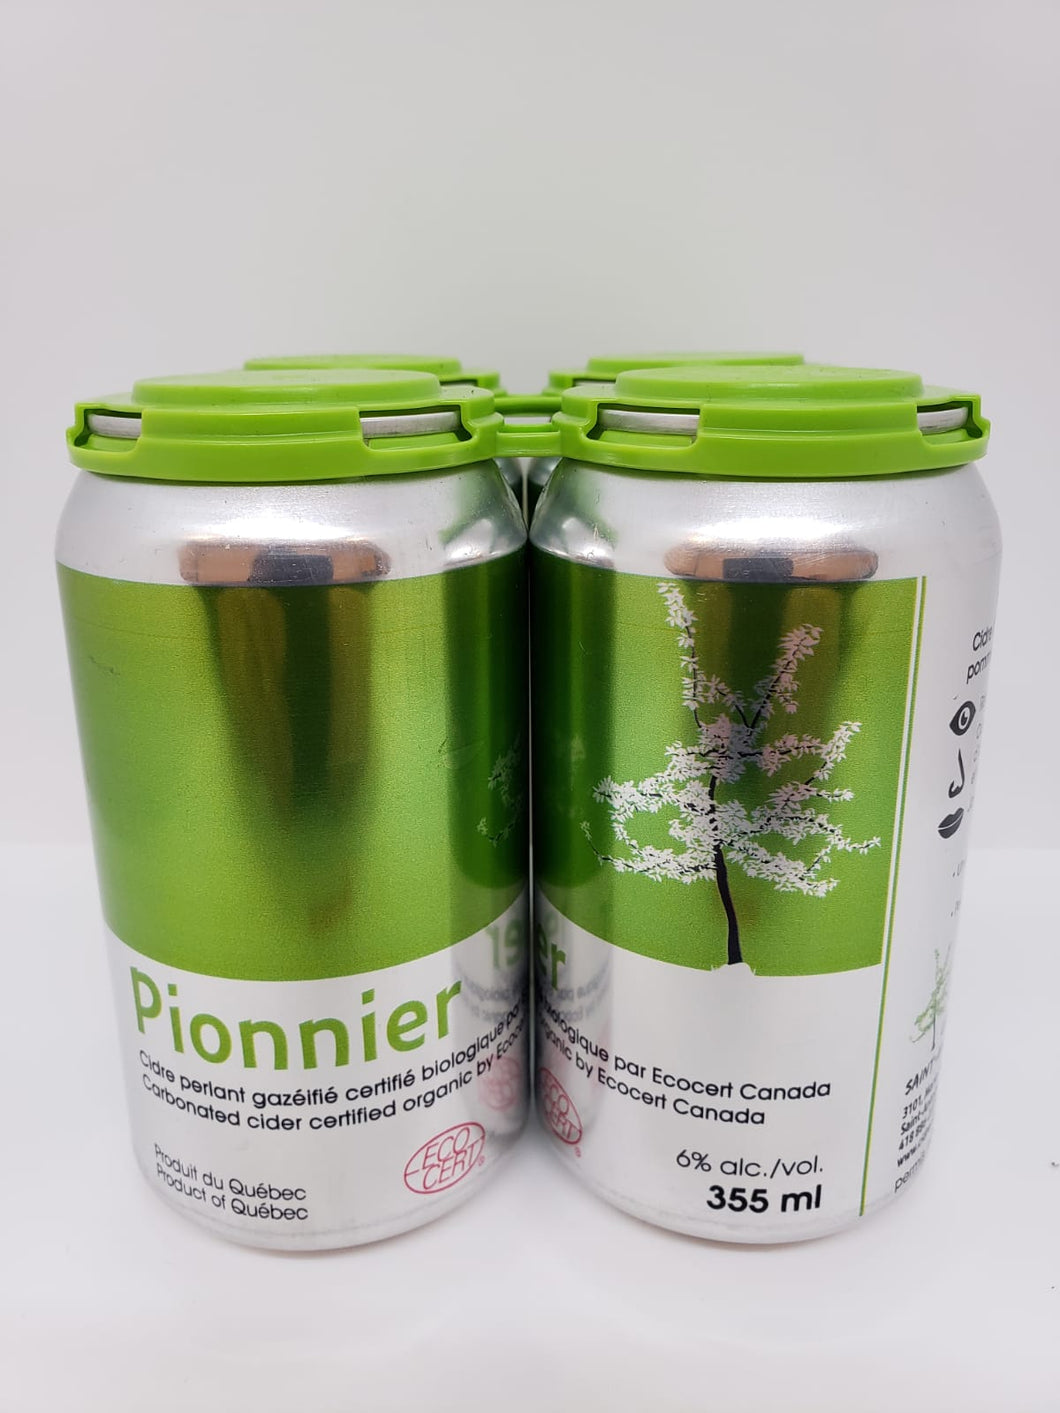 Pionnier 4pack